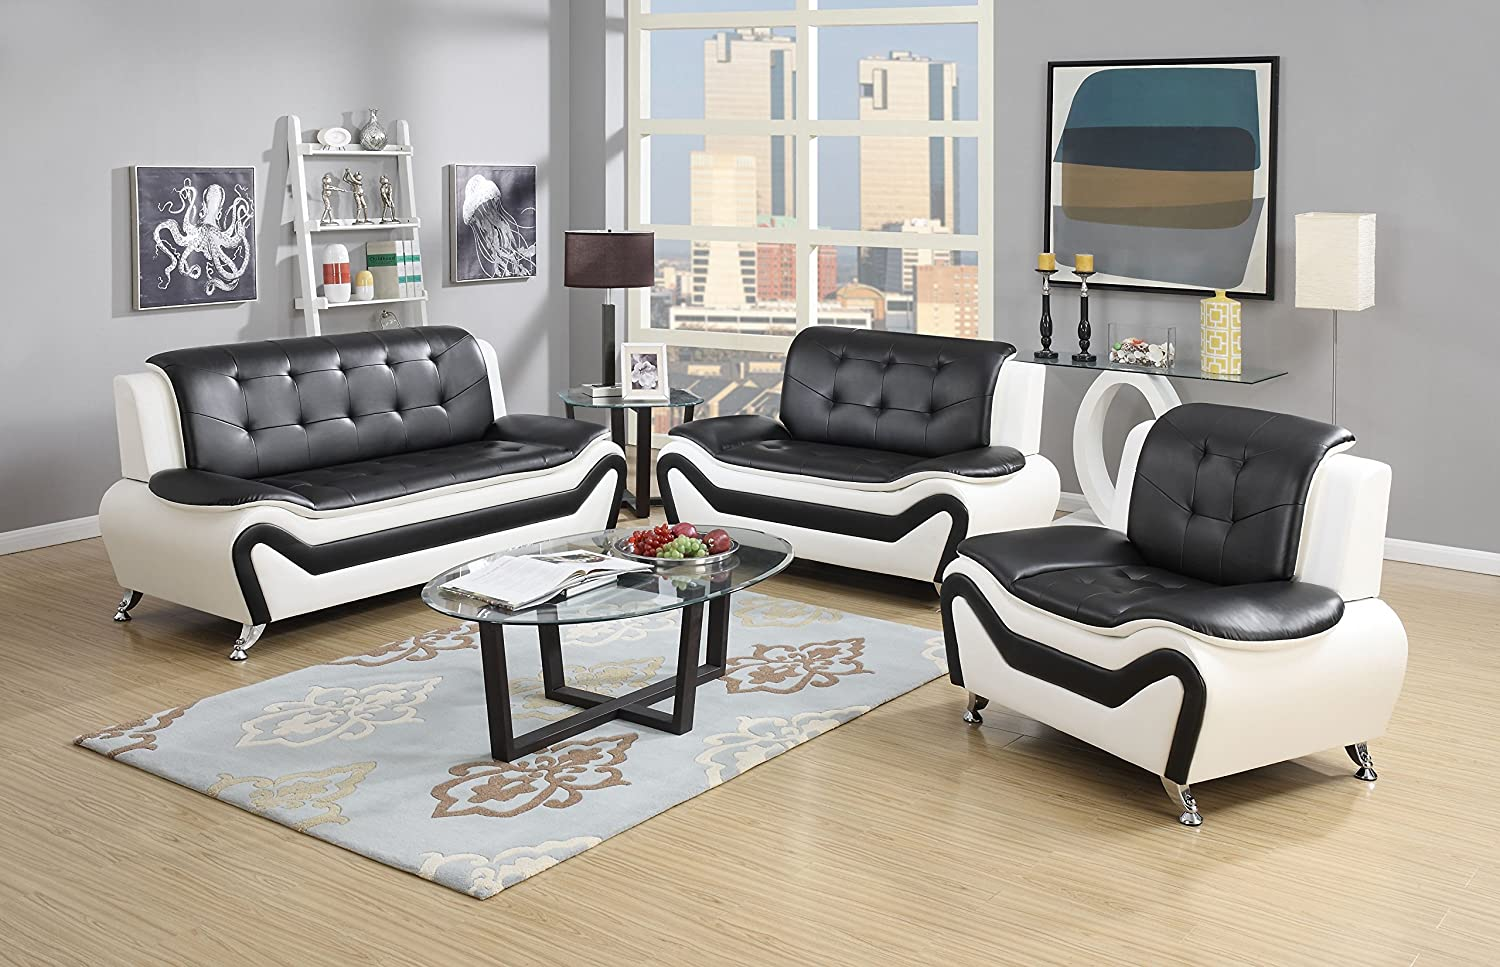 Beau Amazon.com: US Pride Furniture 3 Piece Modern Bonded Leather Sofa Set With  Sofa, Loveseat, And Chair, White/Black: Kitchen U0026 Dining